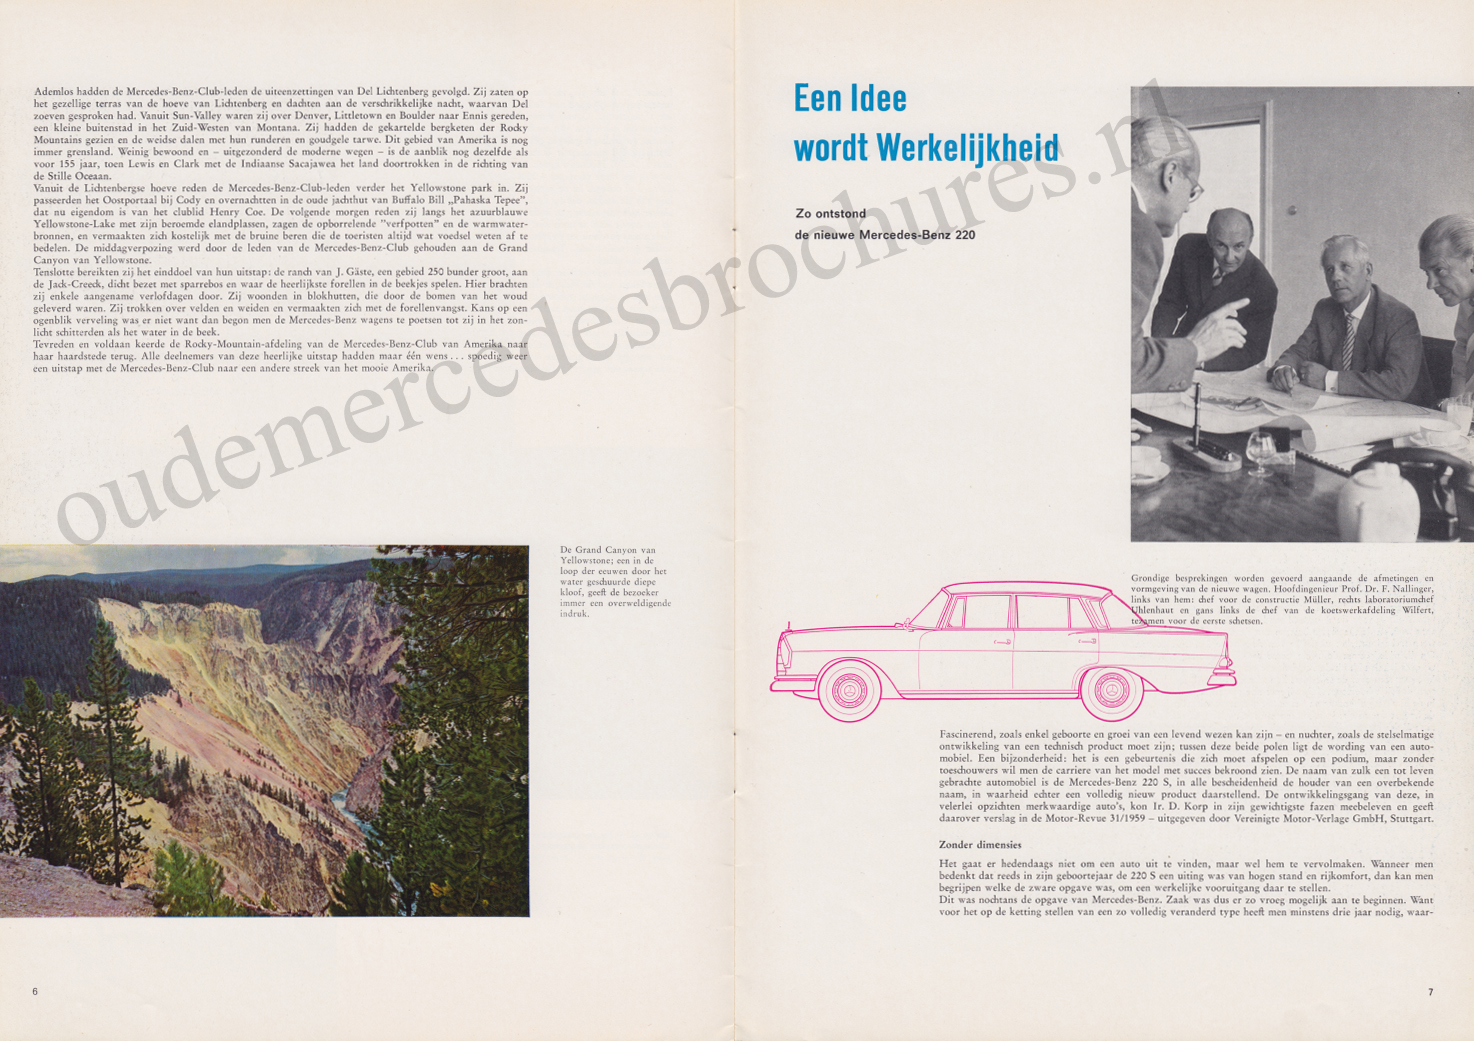 (REVISTA): Periódico In aller welt n.º 38 - Mercedes-Benz no mundo - 1960 - multilingue 004